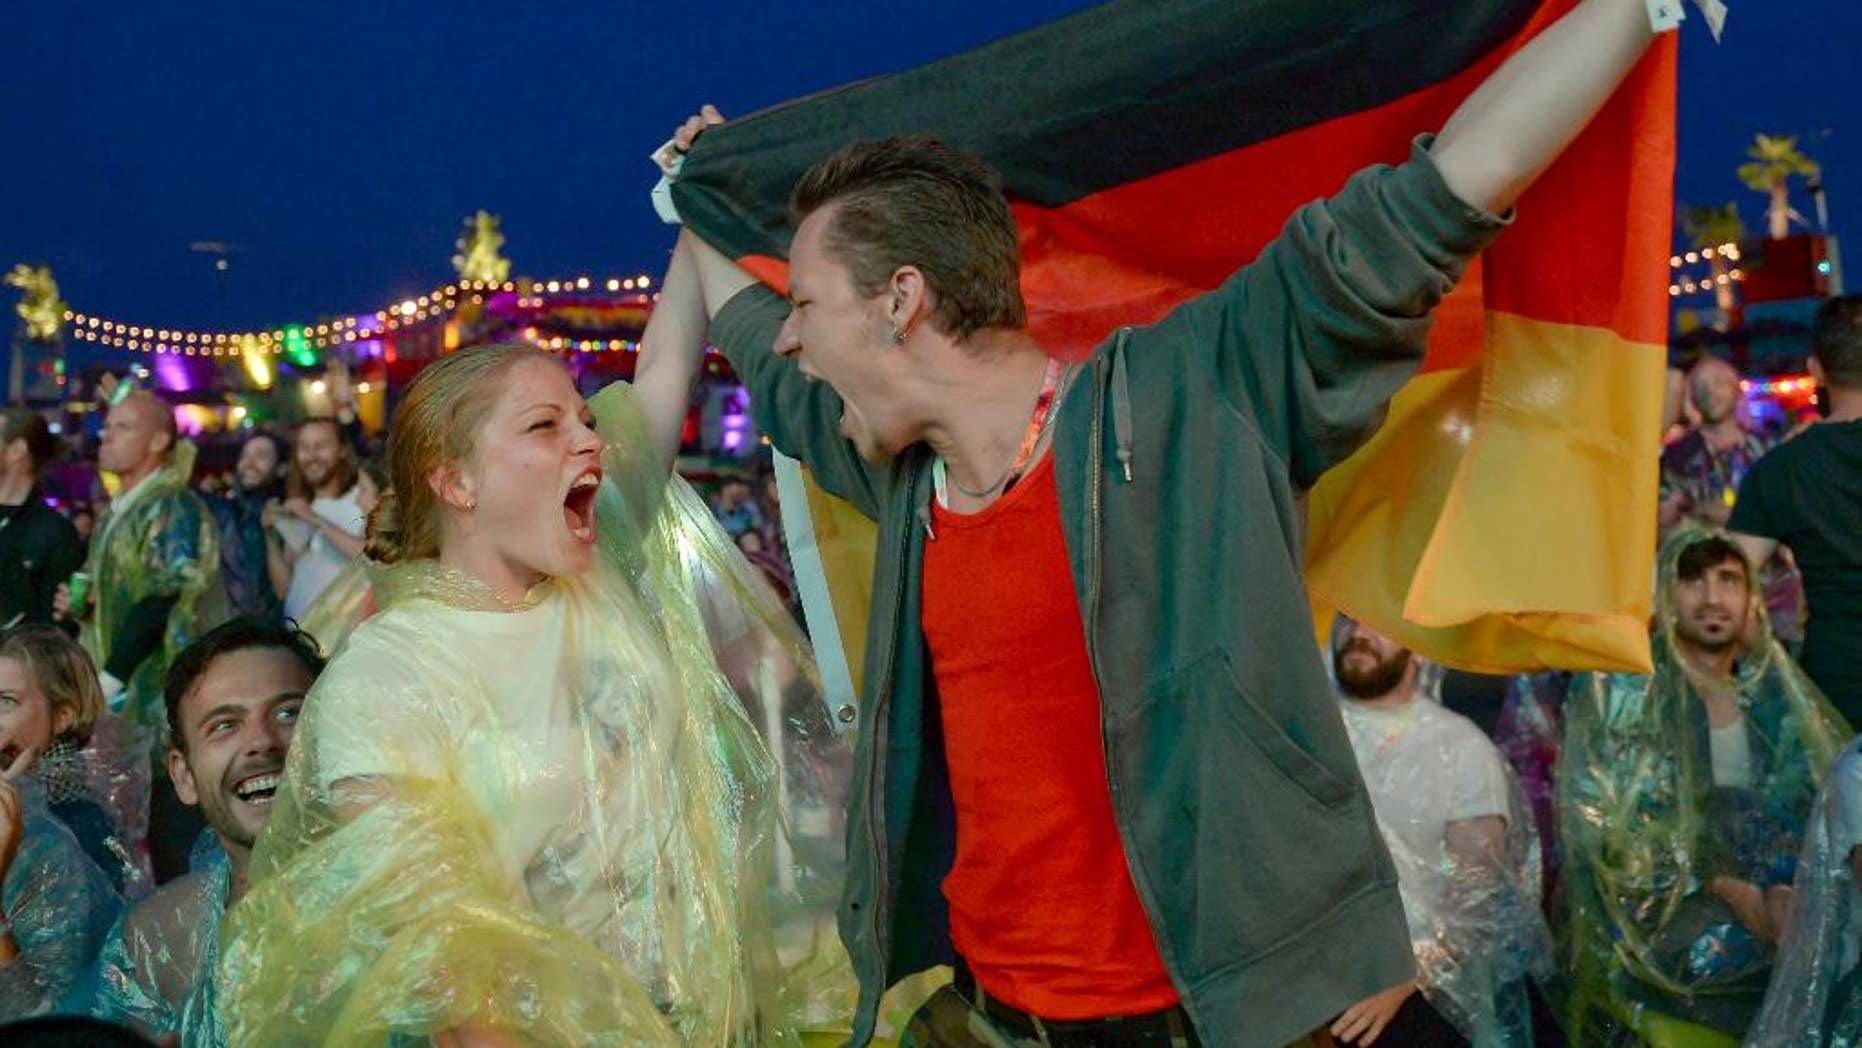 Soccer fans Daniel and Maryan celebrate as they watch the semifinal of the 2014 soccer World Cup between Brazil and Germany on the sidelines of the 'Bread & Butter' fair in Berlin, Tuesday evening, July 8, 2014.  (AP Photo/dpa, Britta Pedersen)